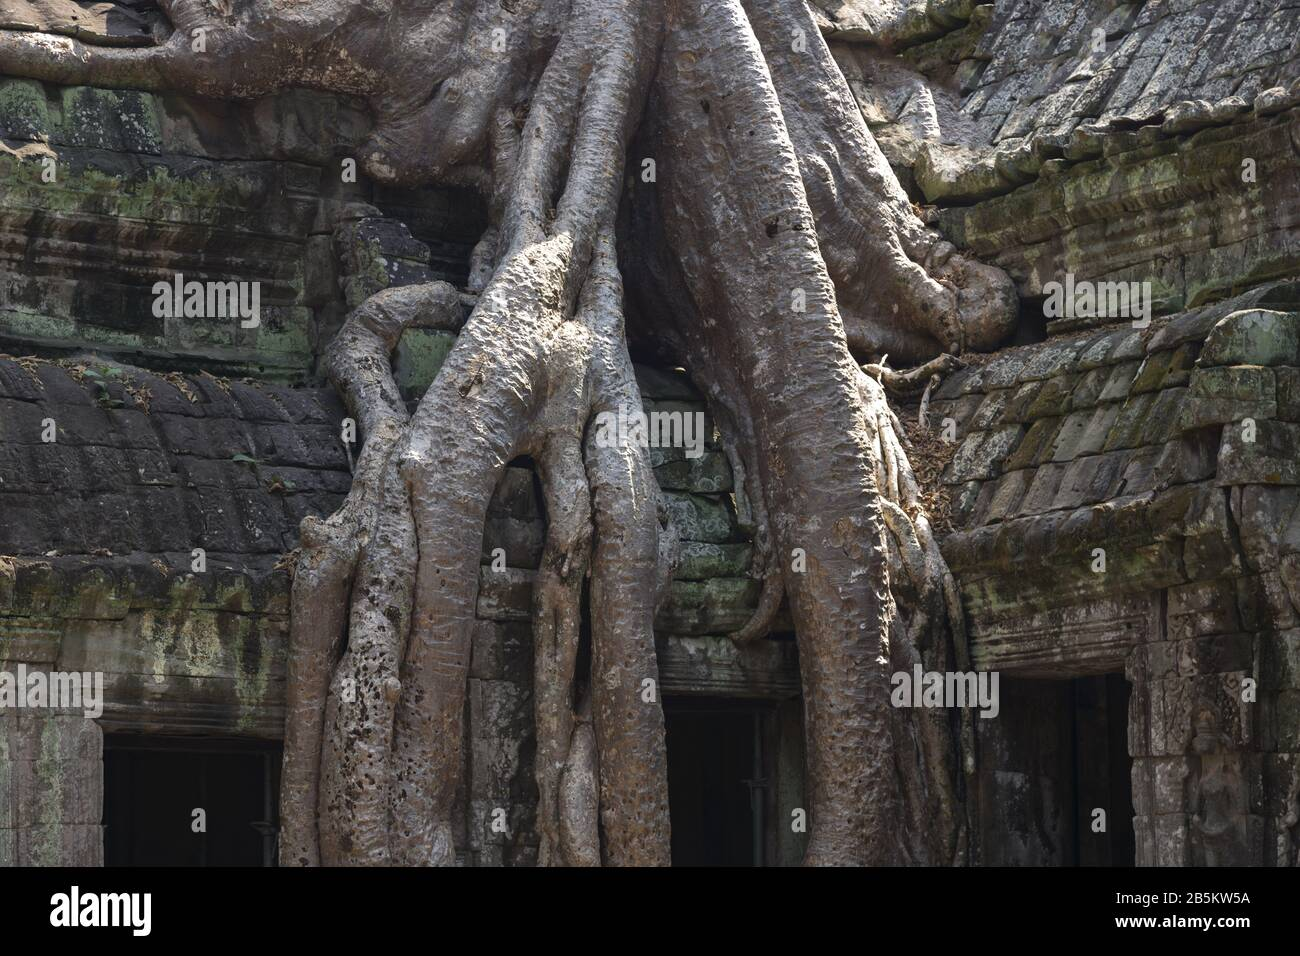 massive-tree-roots-growing-from-ancient-